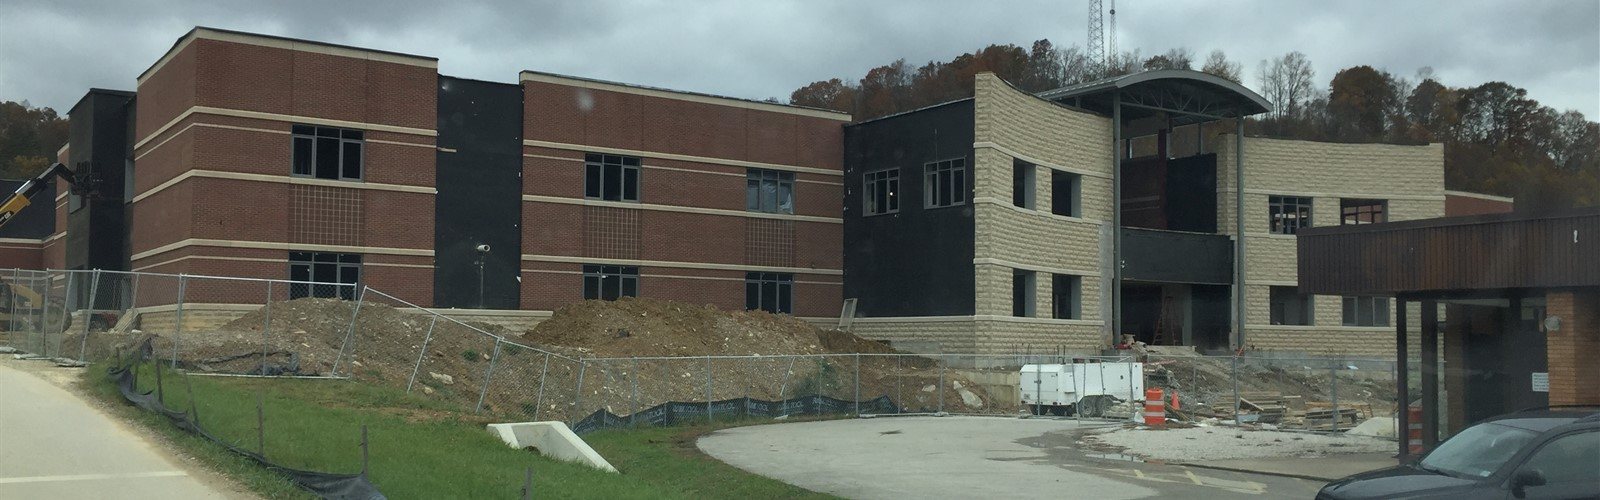 Front of the New High School building, windows going in.